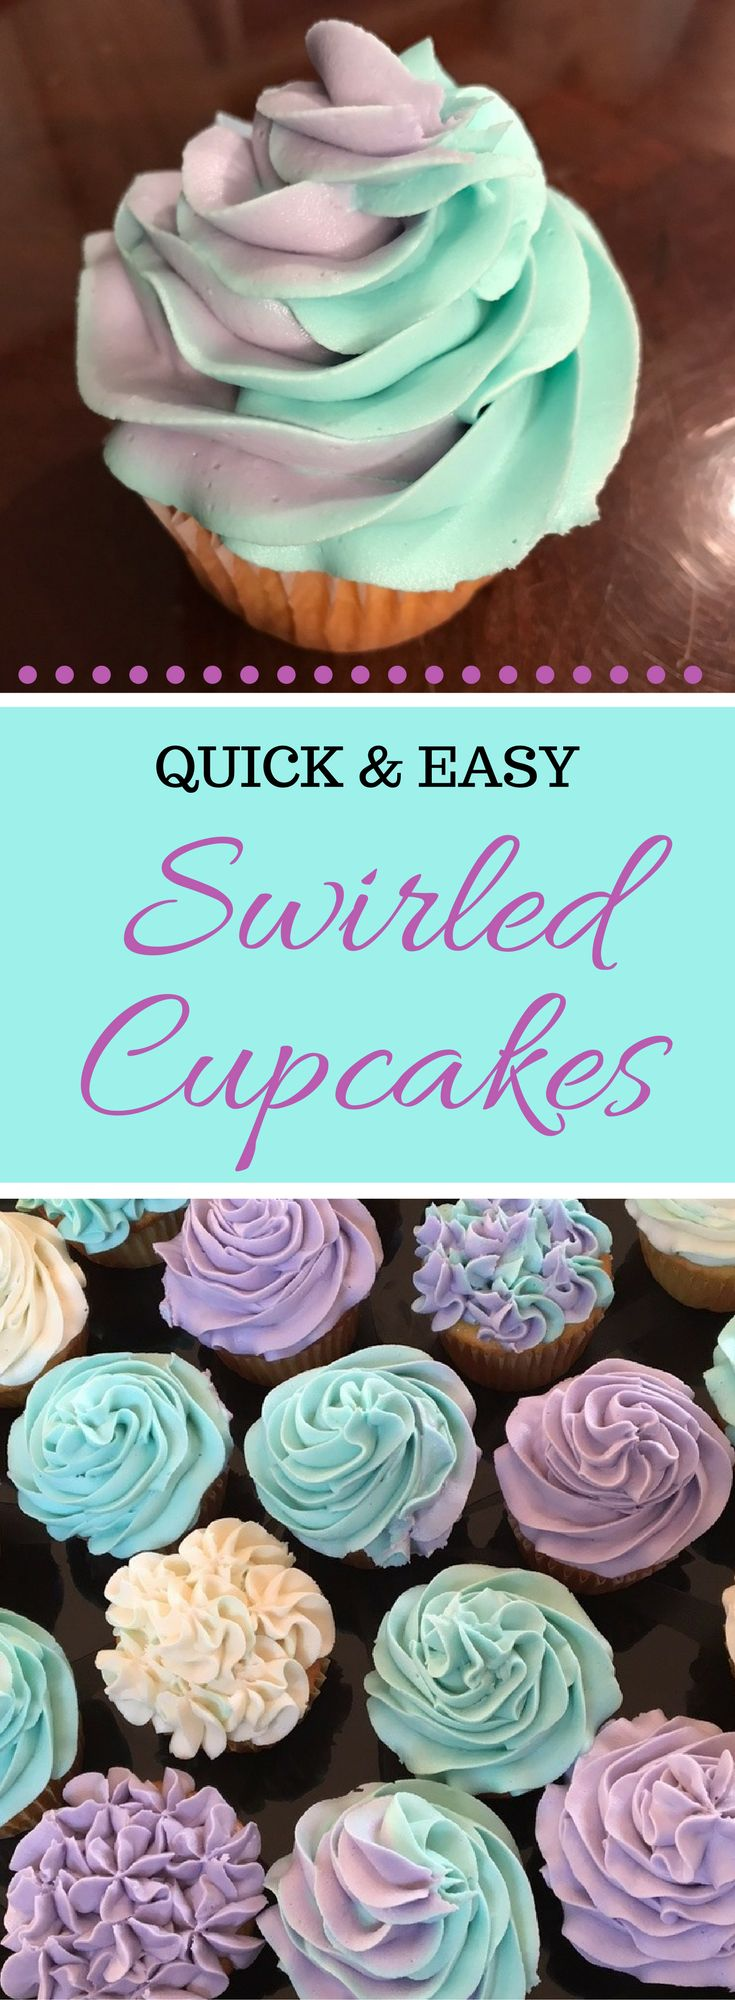 Quick Easy Cake Decorating Tips : Best 25+ Blue Cupcakes ideas on Pinterest Cupcake ...